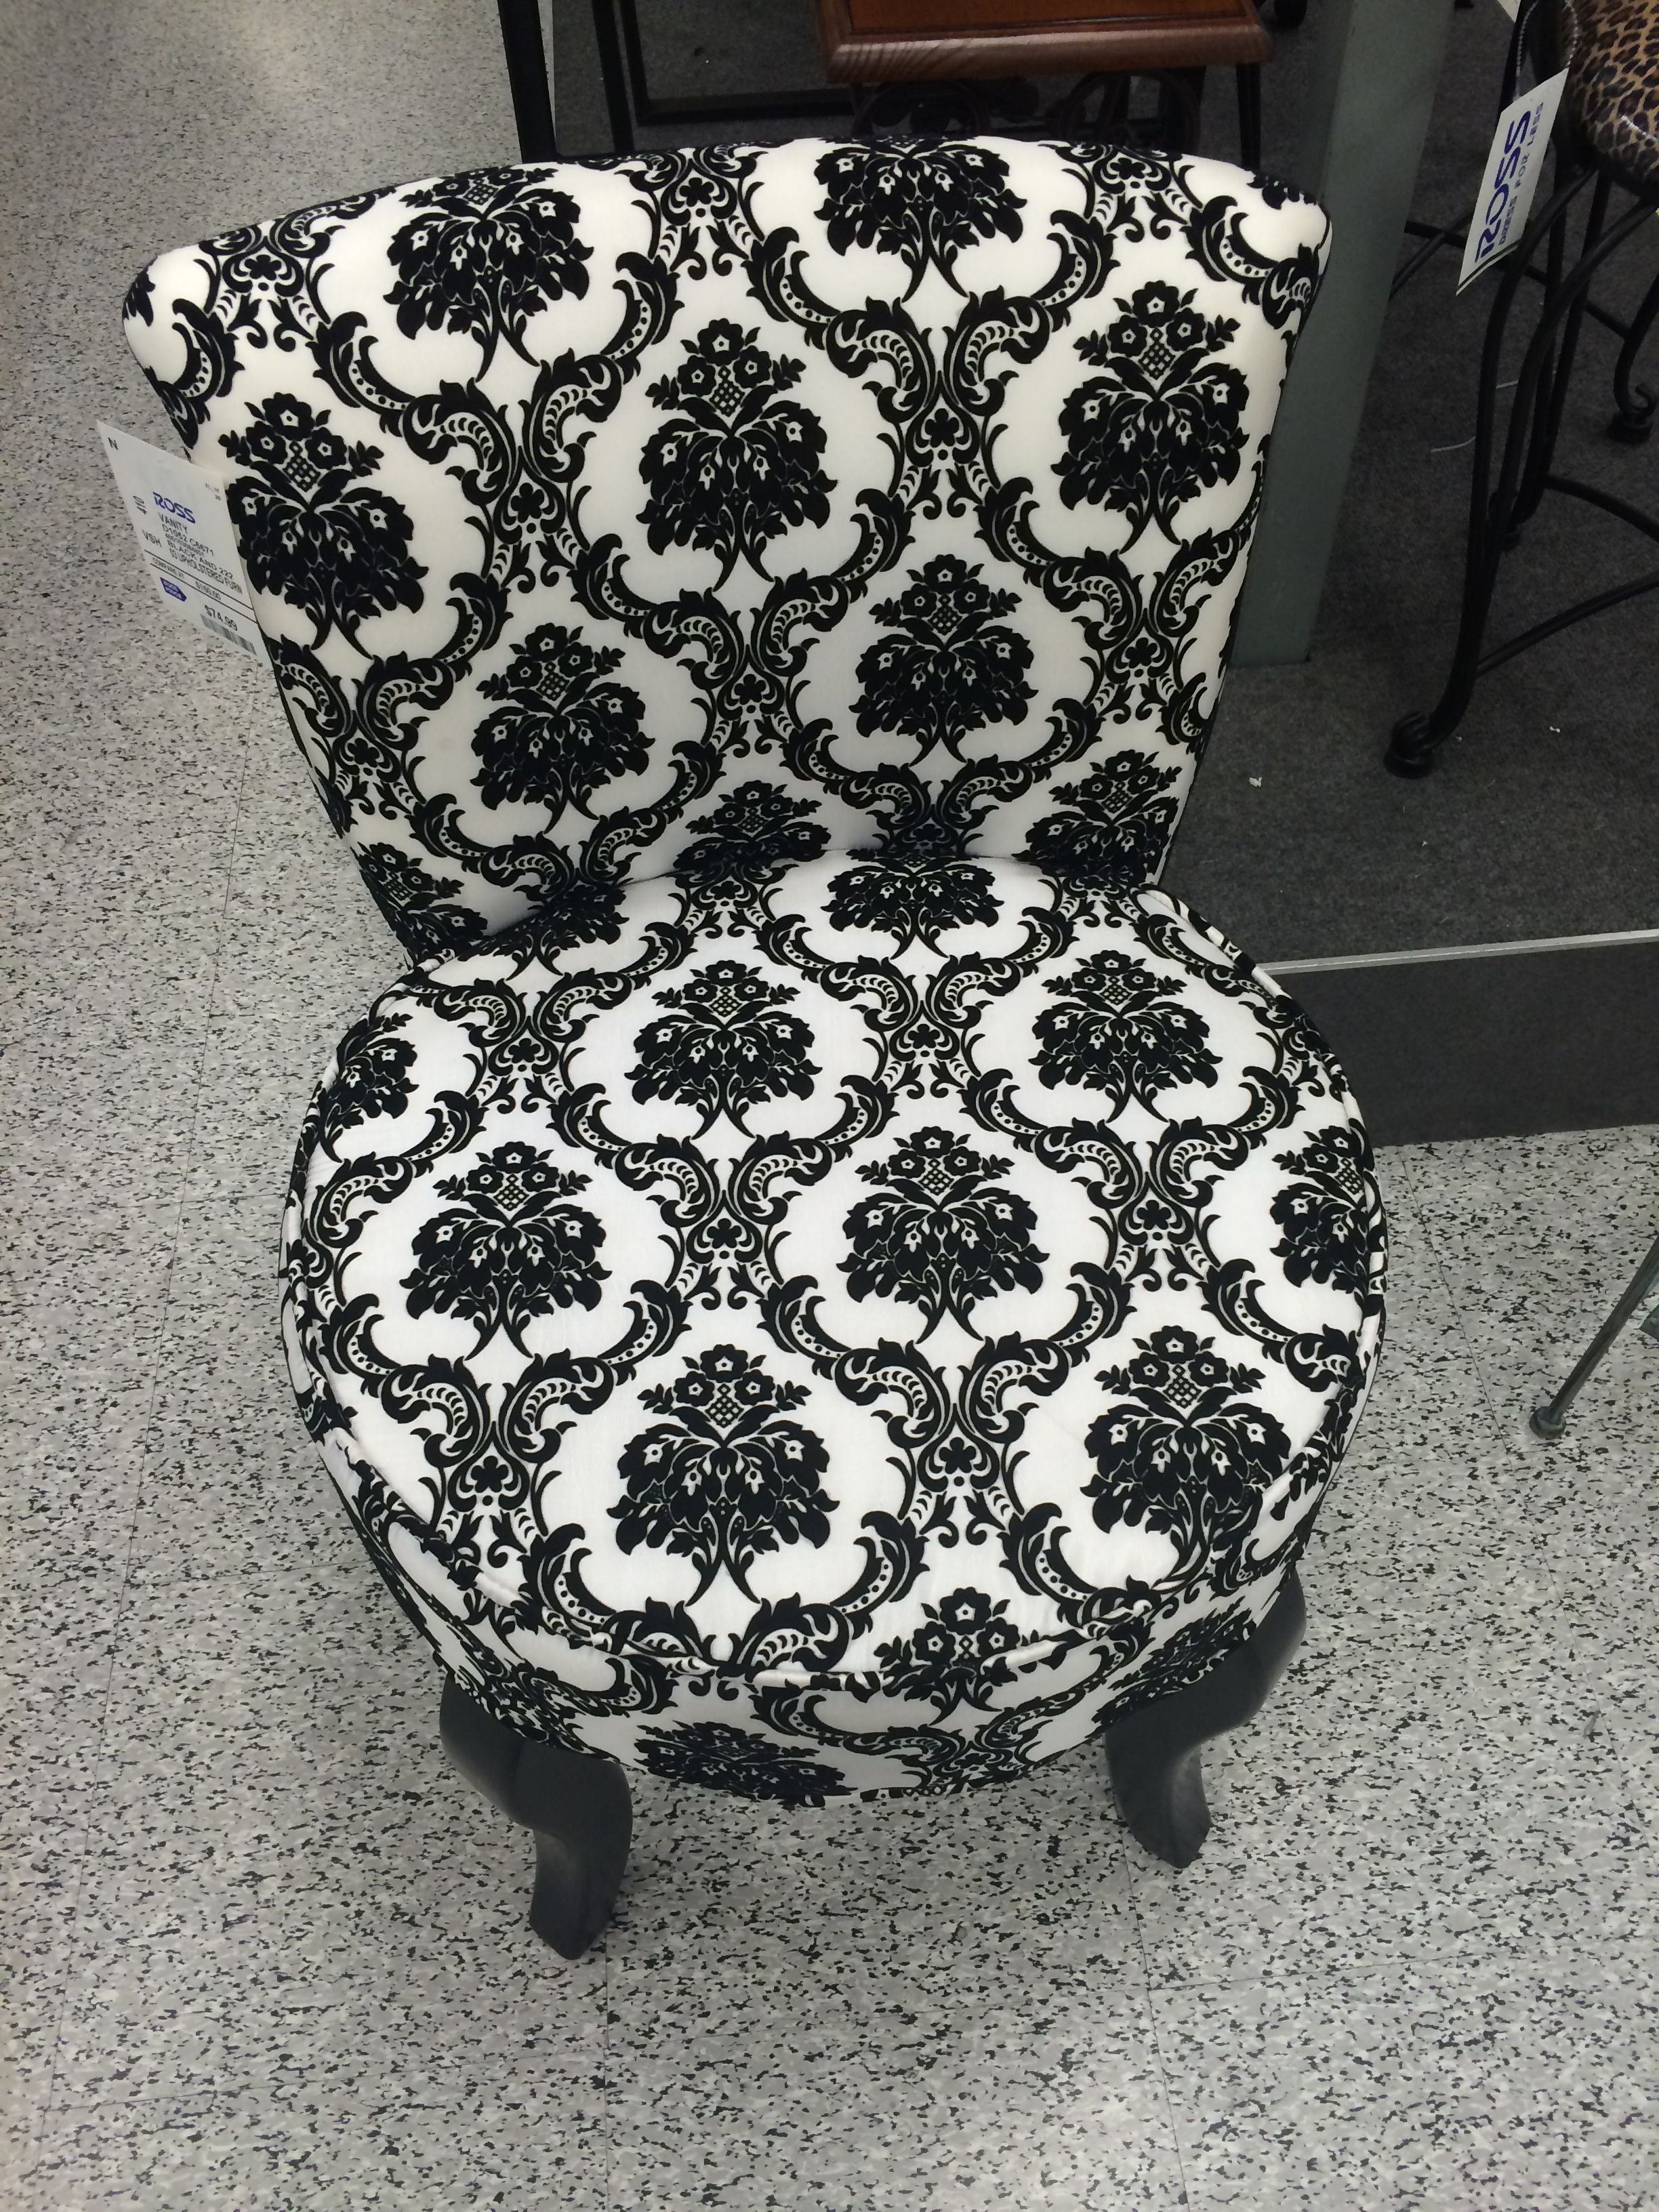 Chair At Ross Stores Dresses For Less Cool Things To